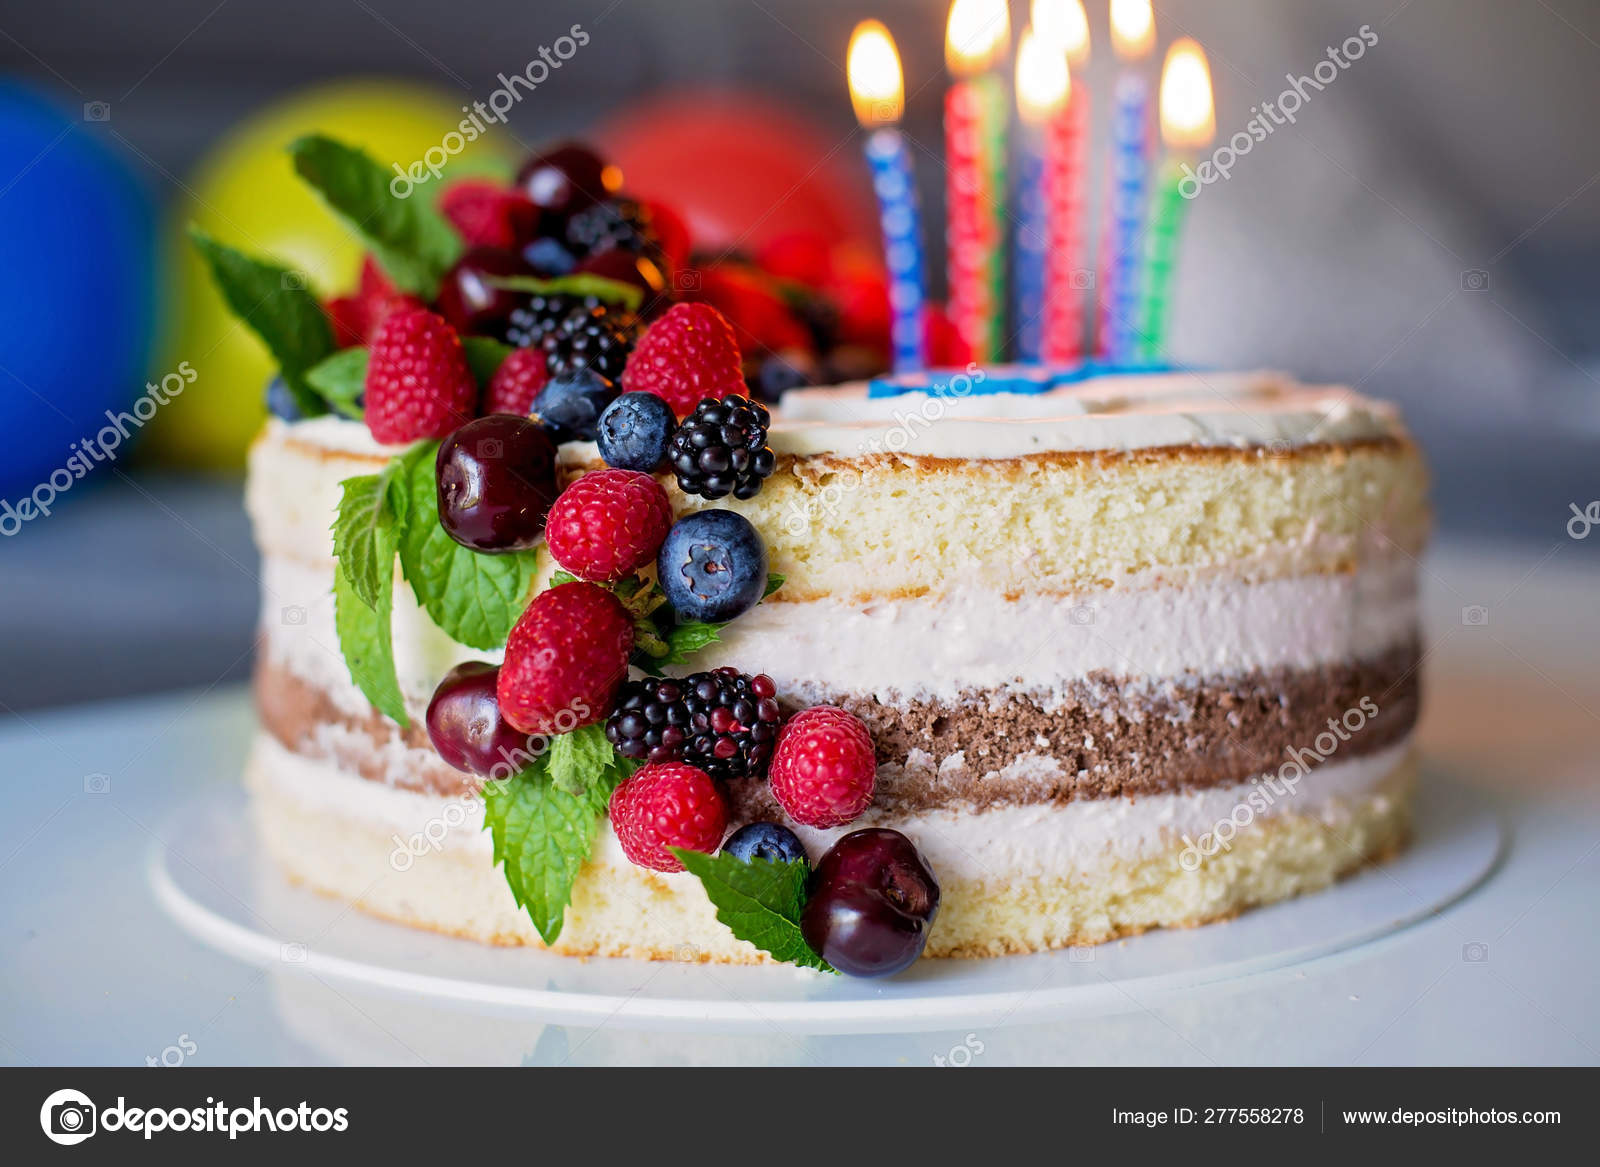 Excellent Homemade Kids Birthday Cake With Lots Of Fruits On Top Cherries Funny Birthday Cards Online Alyptdamsfinfo